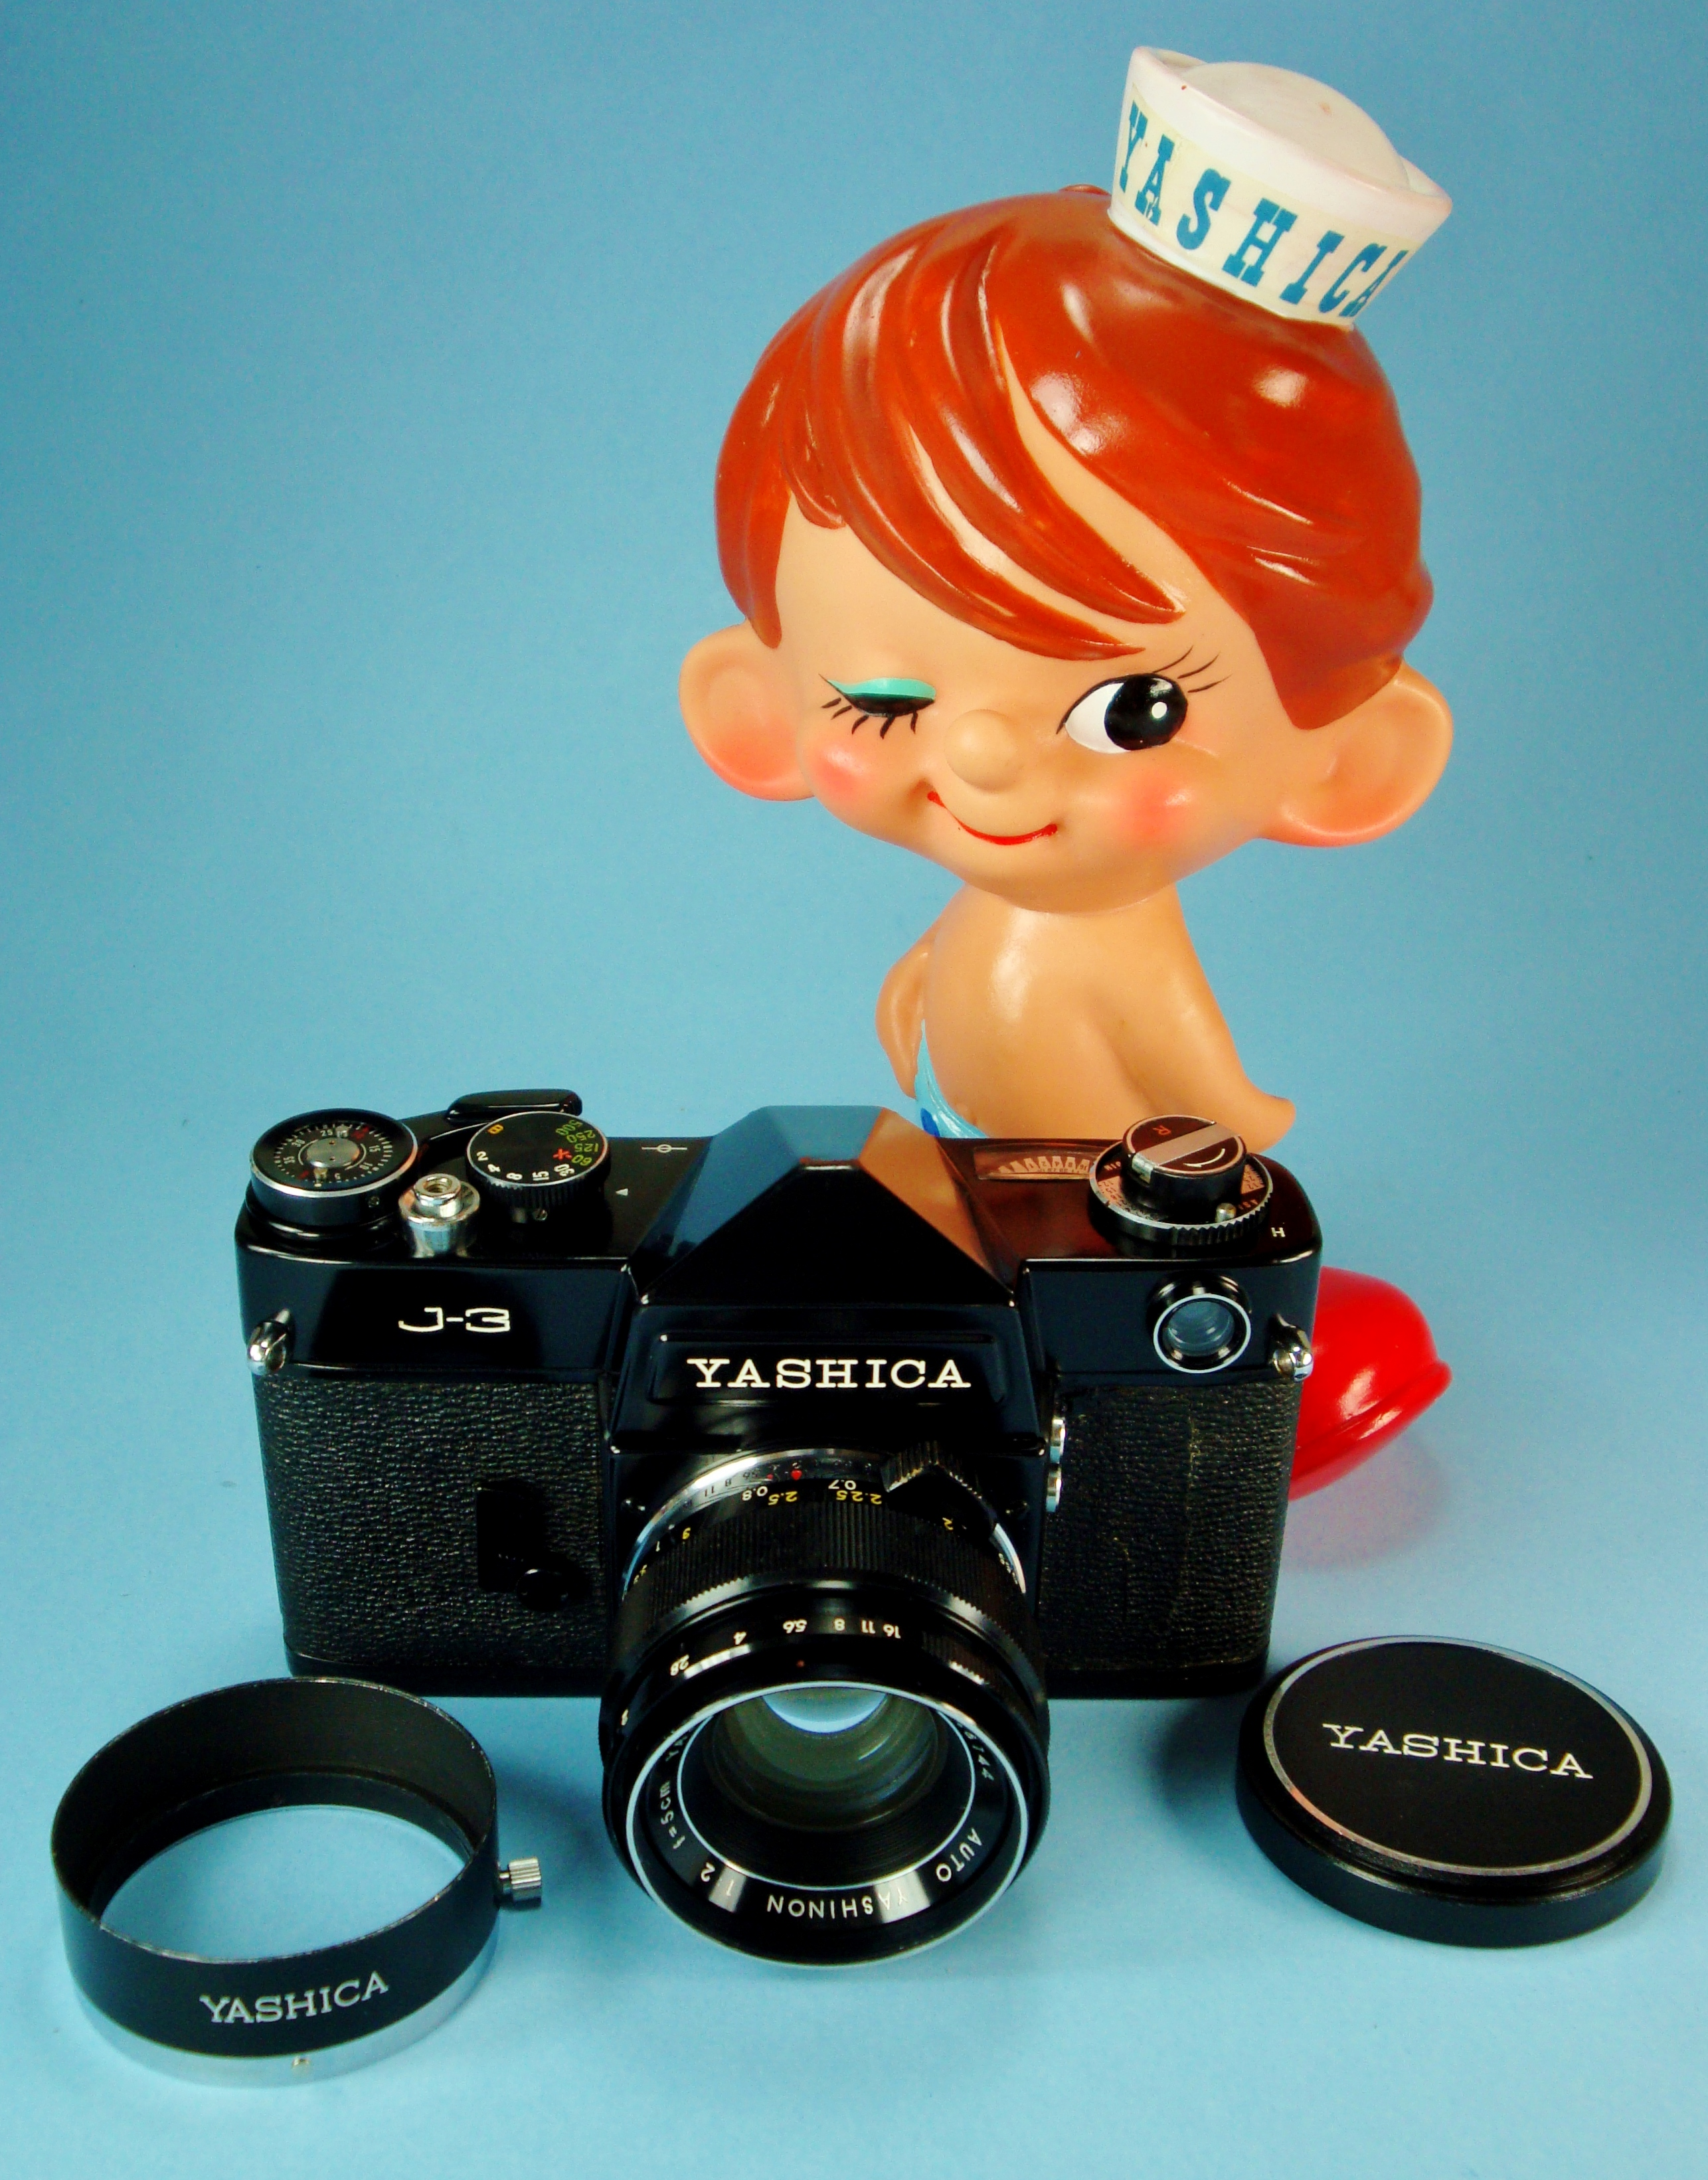 yashica sailor boy big with j3